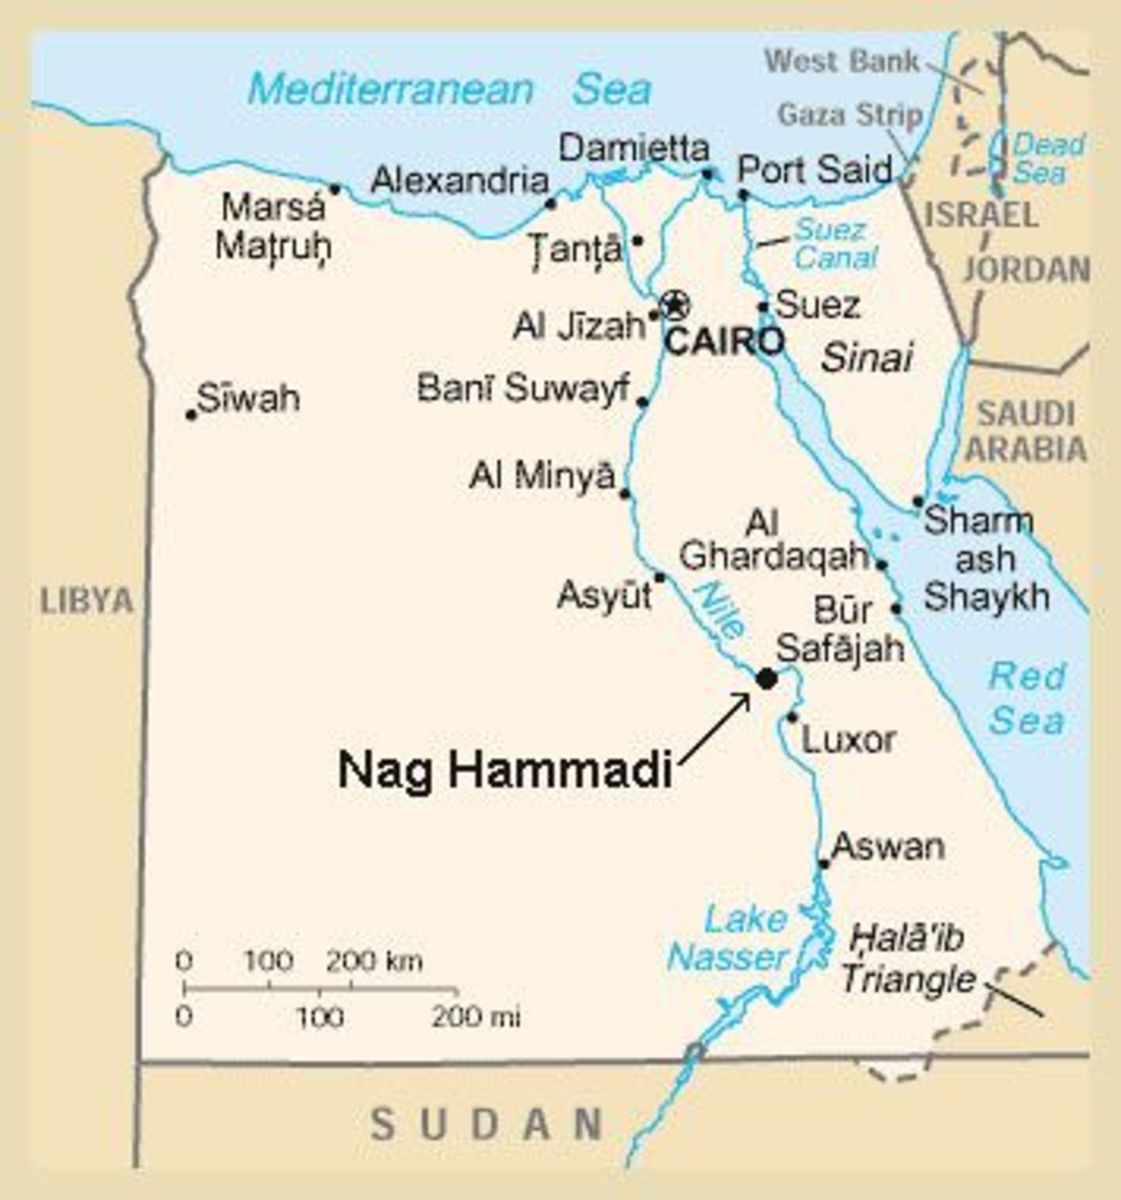 Egypt's Nag Hammadi site was relatively close to Israel and the hub of the Mediterranean.